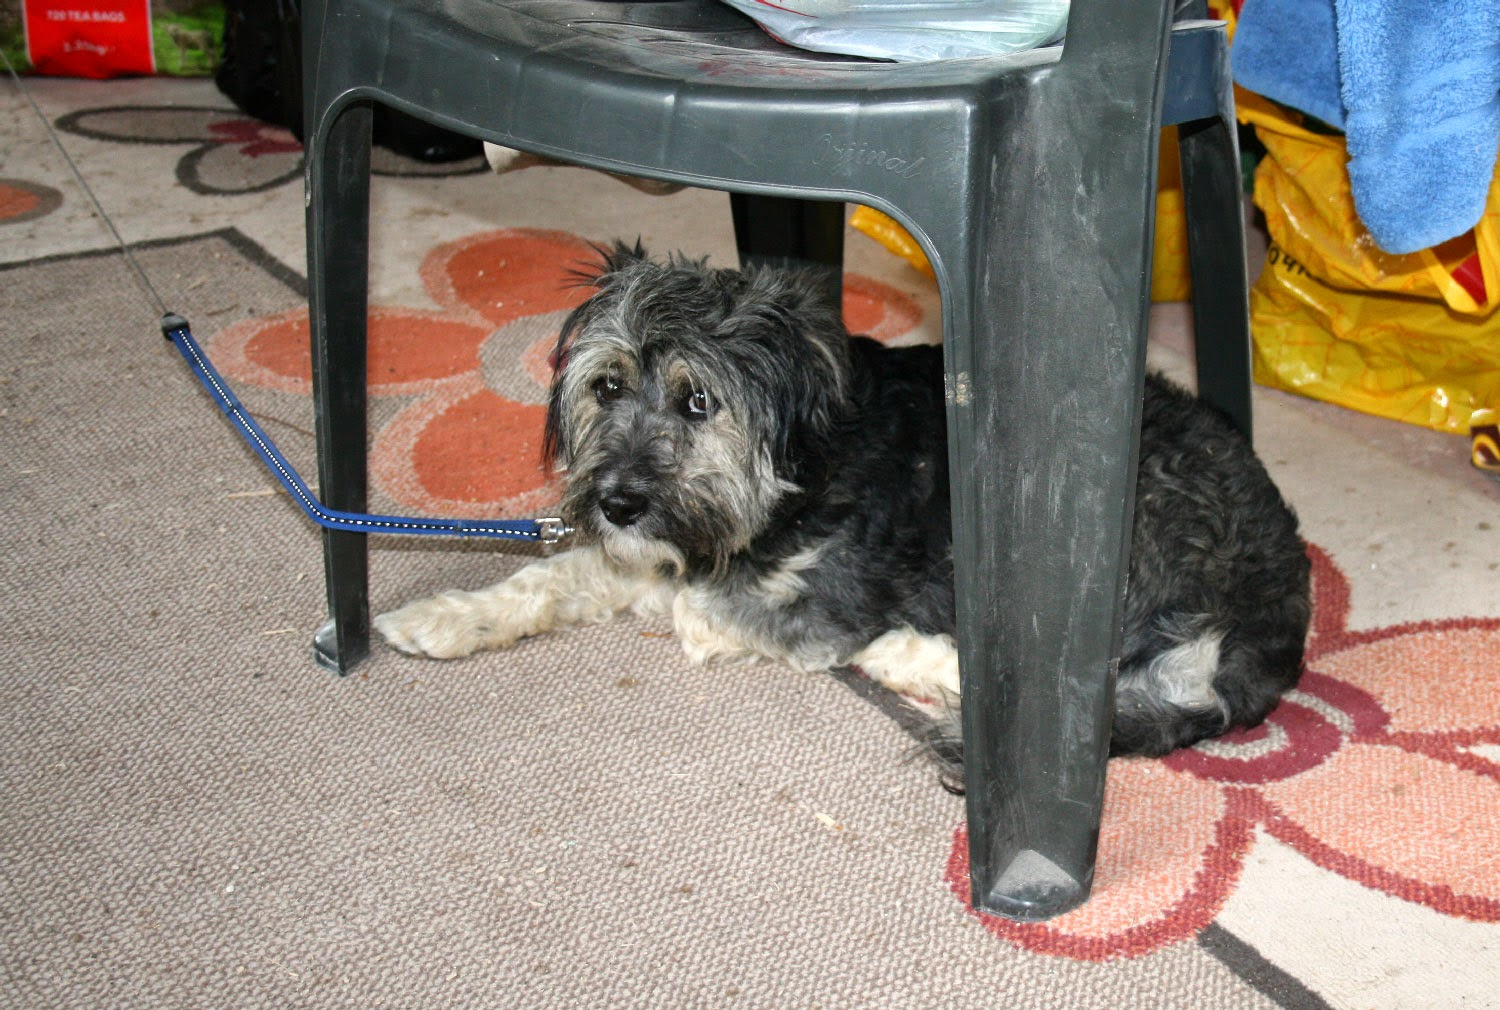 Hiding under the chair